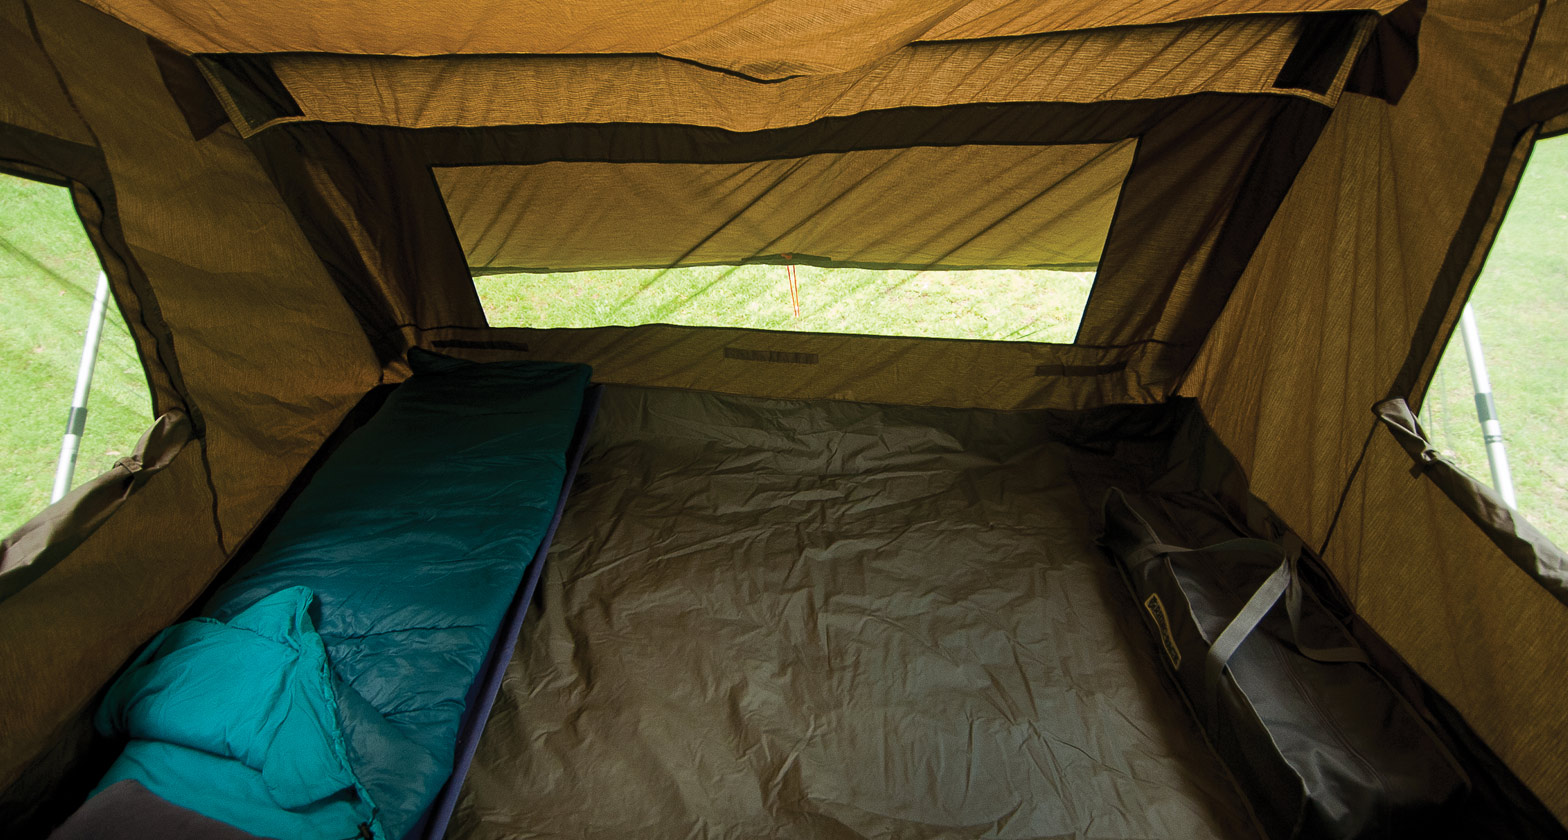 & Tagalong Tent - #RV5T | Rhino-Rack